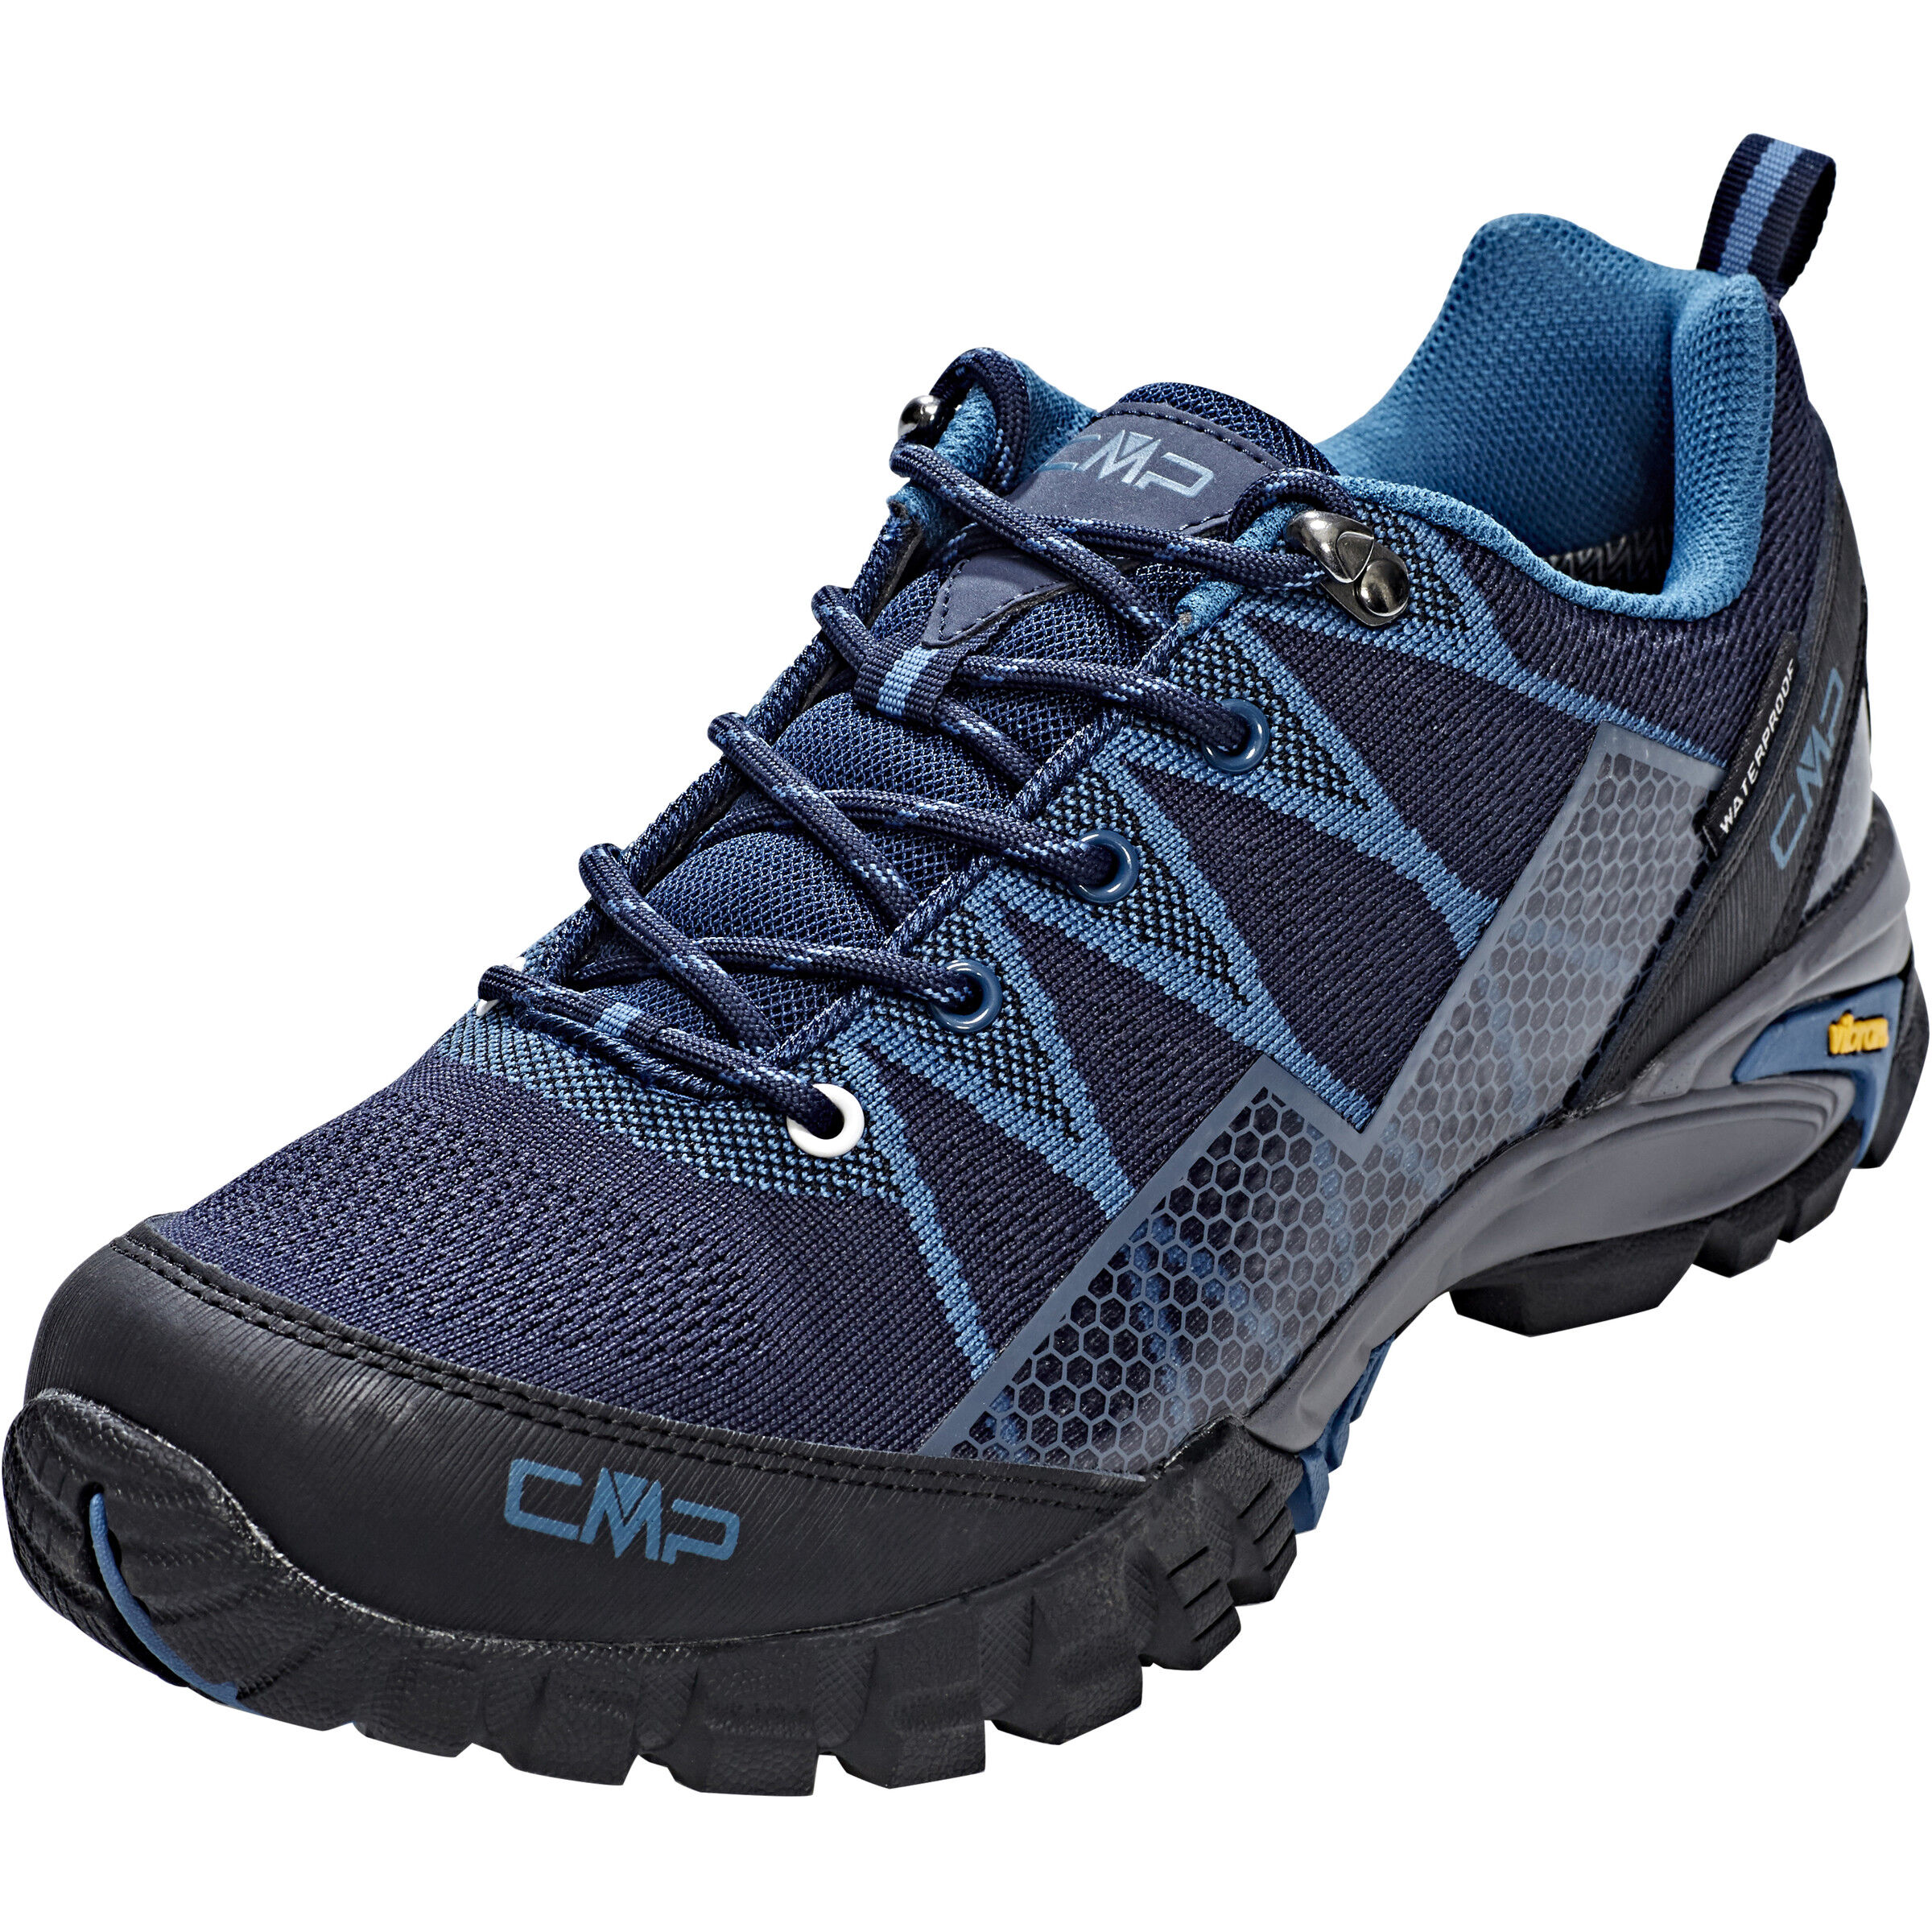 CMP Campagnolo Tauri Low WP Trekking Shoes Herren black blue